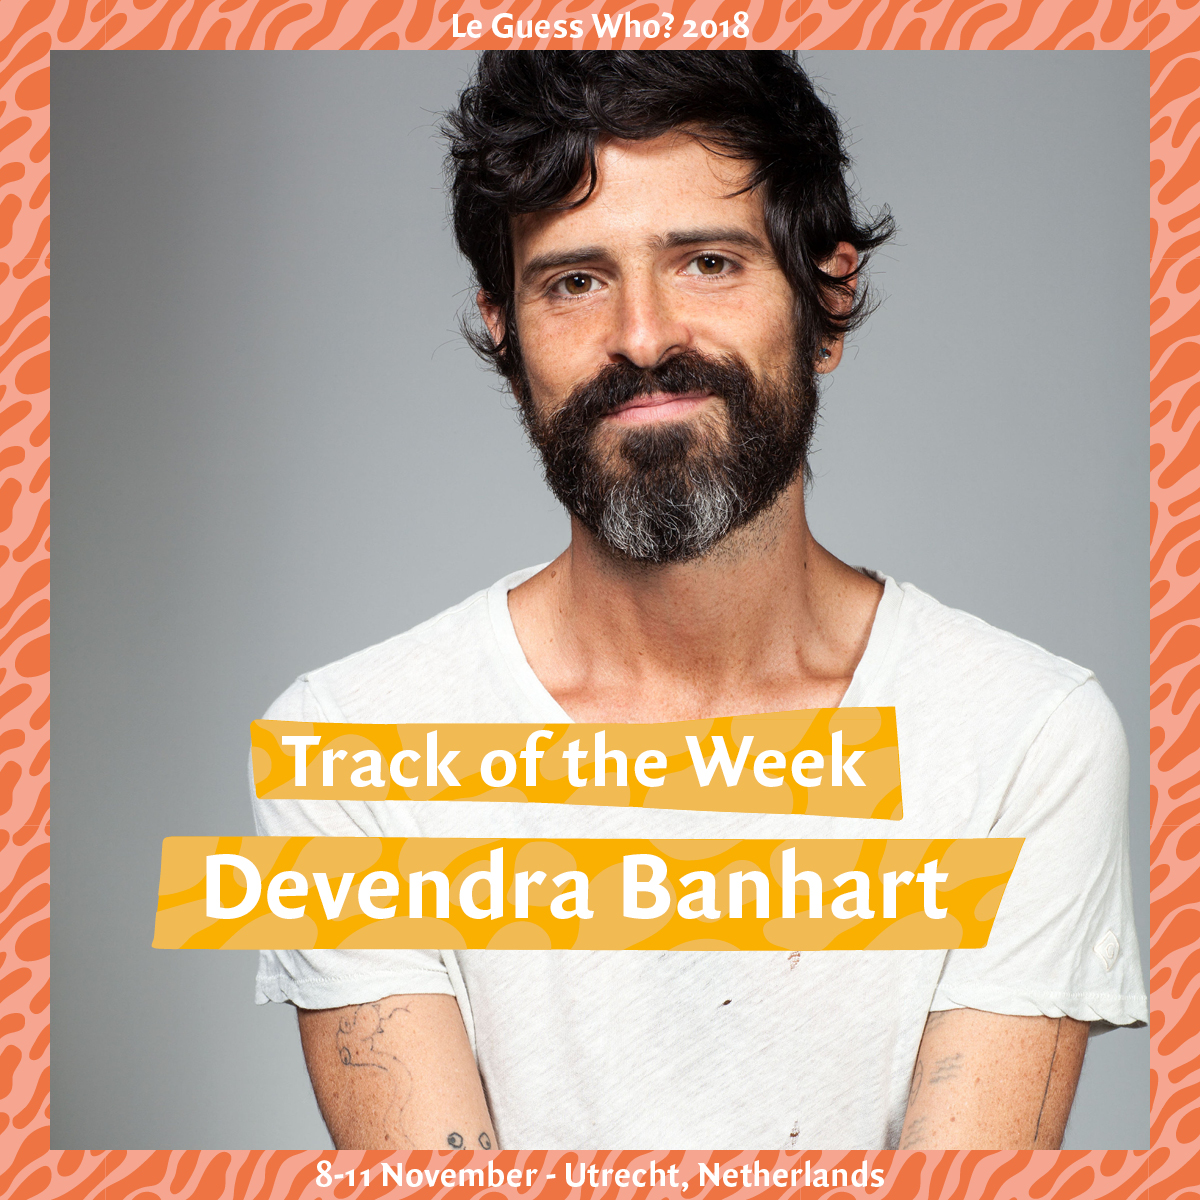 Track of the Week #10: Devendra Banhart - 'Fig in Leather'